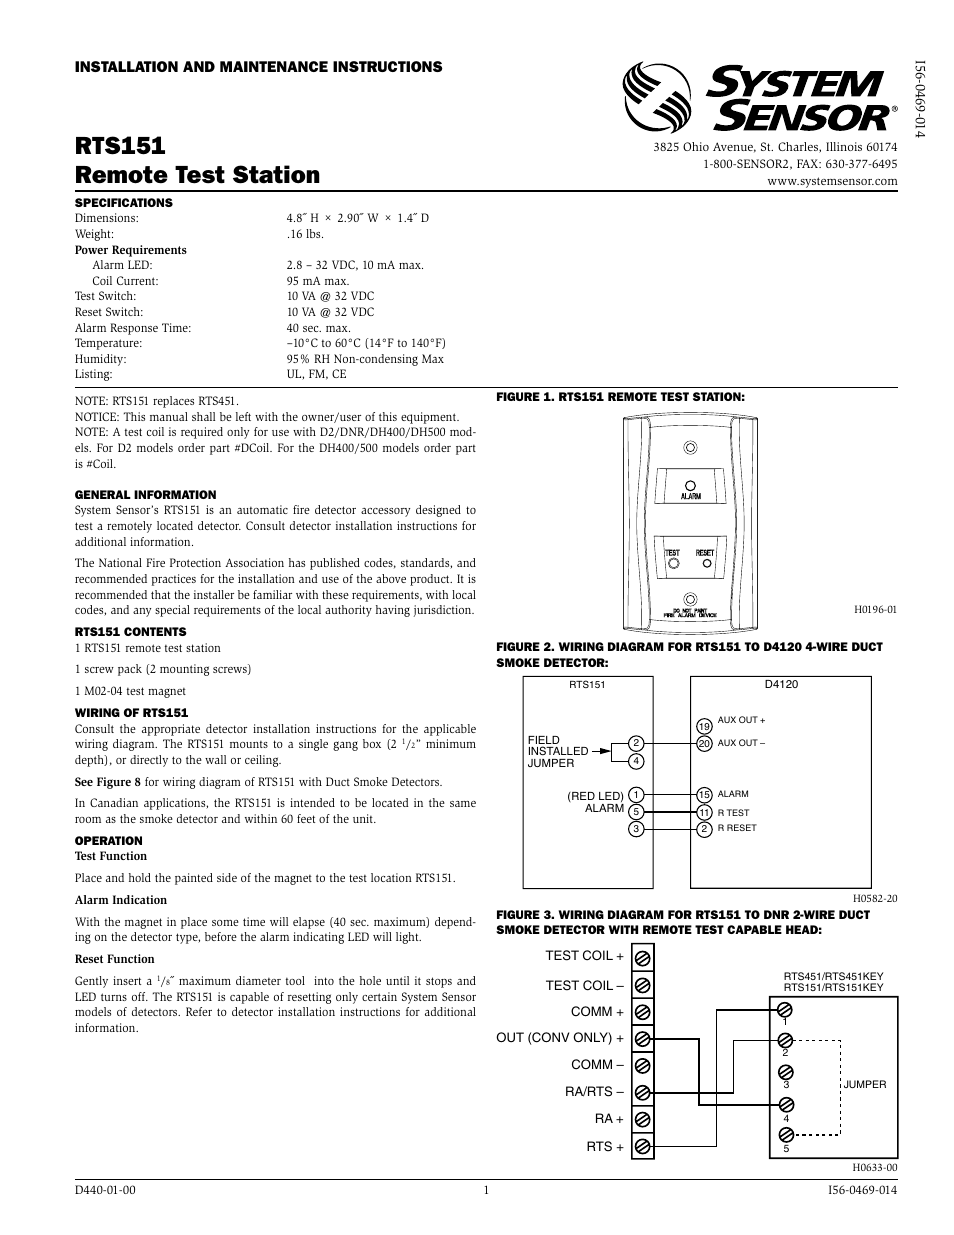 system sensor rts151 page1 system sensor rts151 user manual 2 pages 5R55E Transmission Wiring Diagram at panicattacktreatment.co